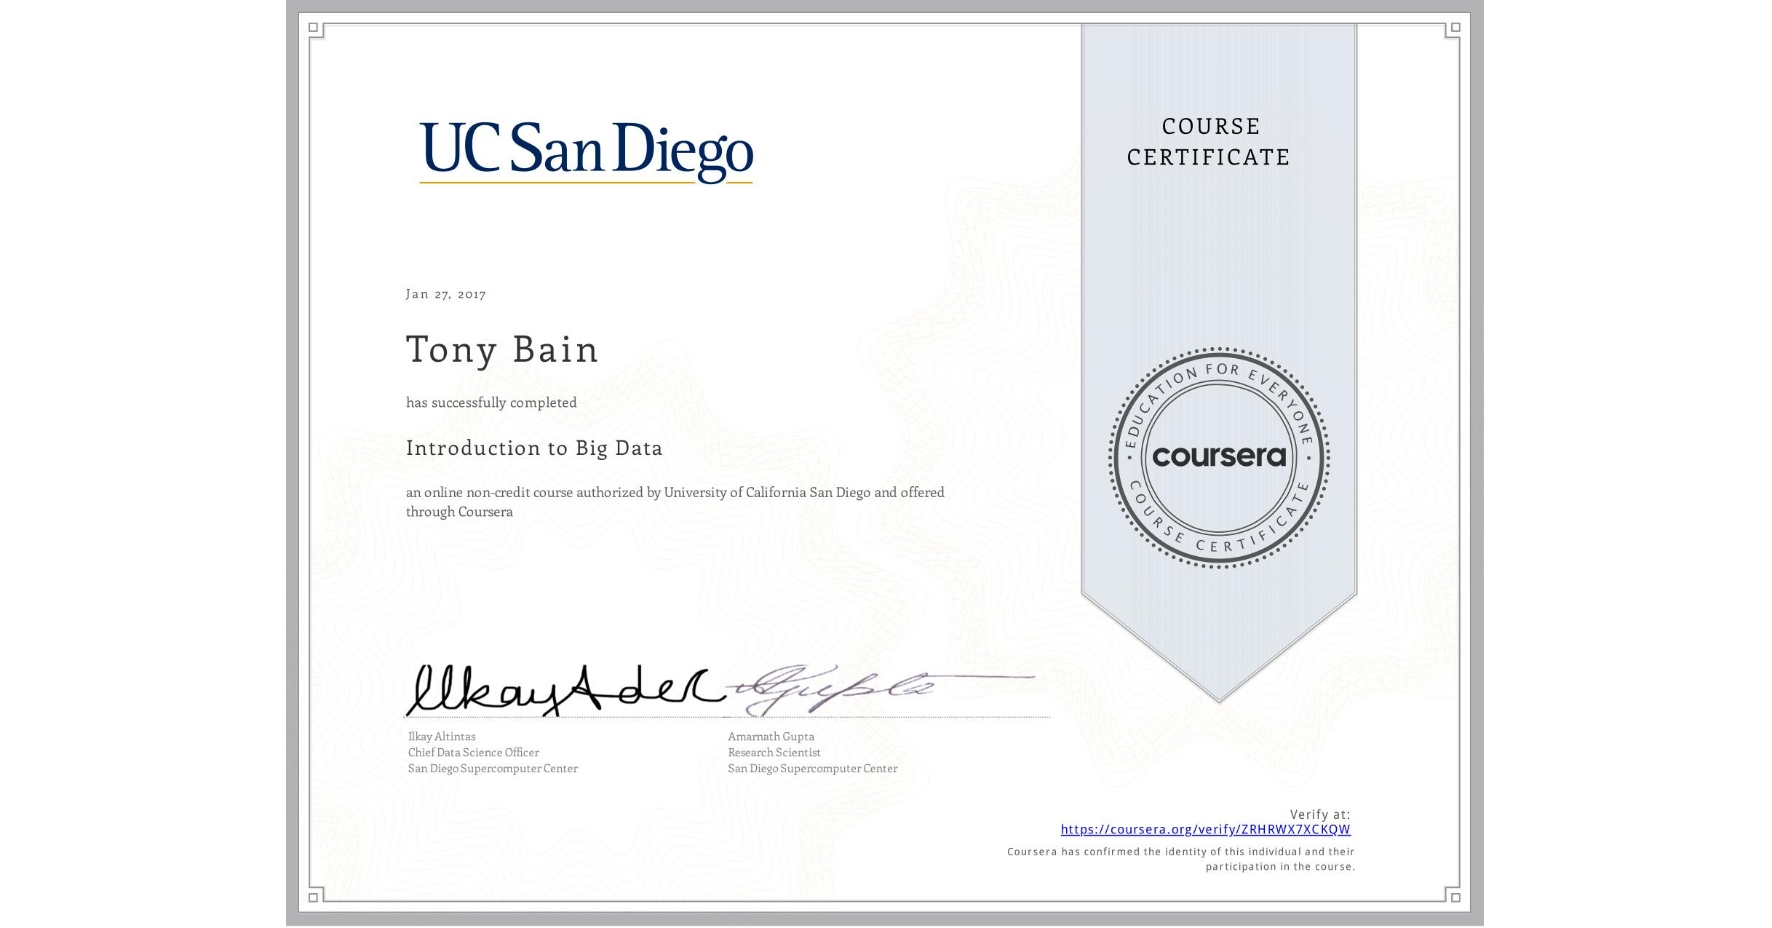 View certificate for Tony Bain, Introduction to Big Data, an online non-credit course authorized by University of California San Diego and offered through Coursera